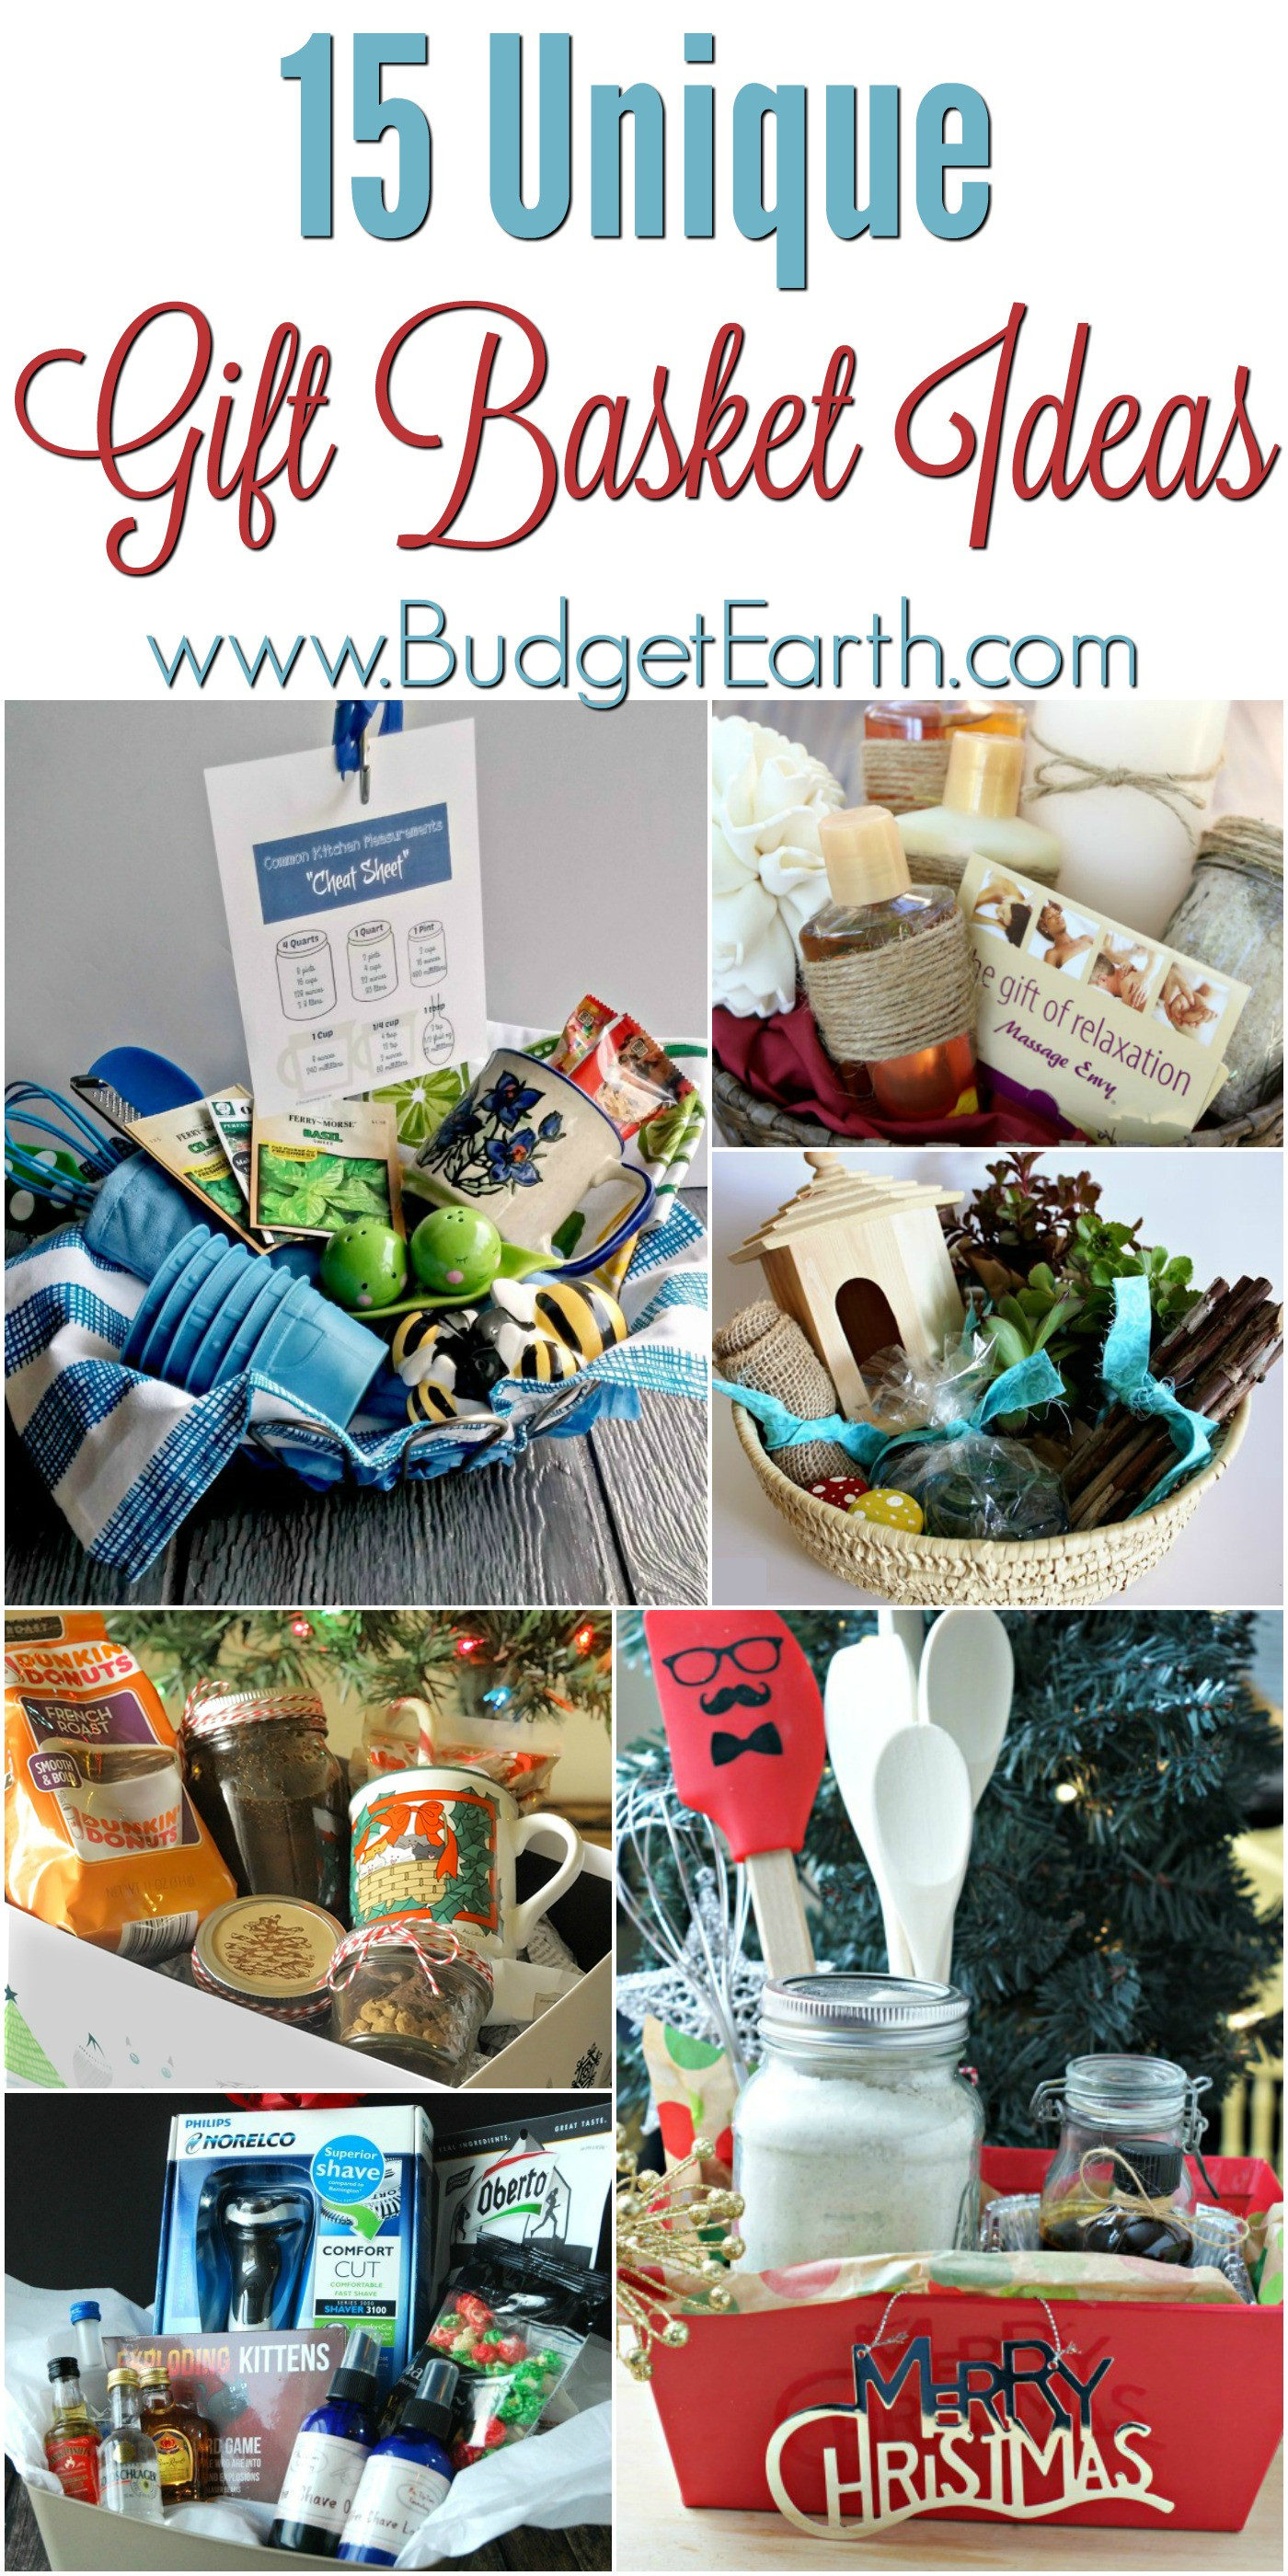 Best ideas about Creative Gift Basket Ideas . Save or Pin 15 Unique Gift Basket Ideas Now.